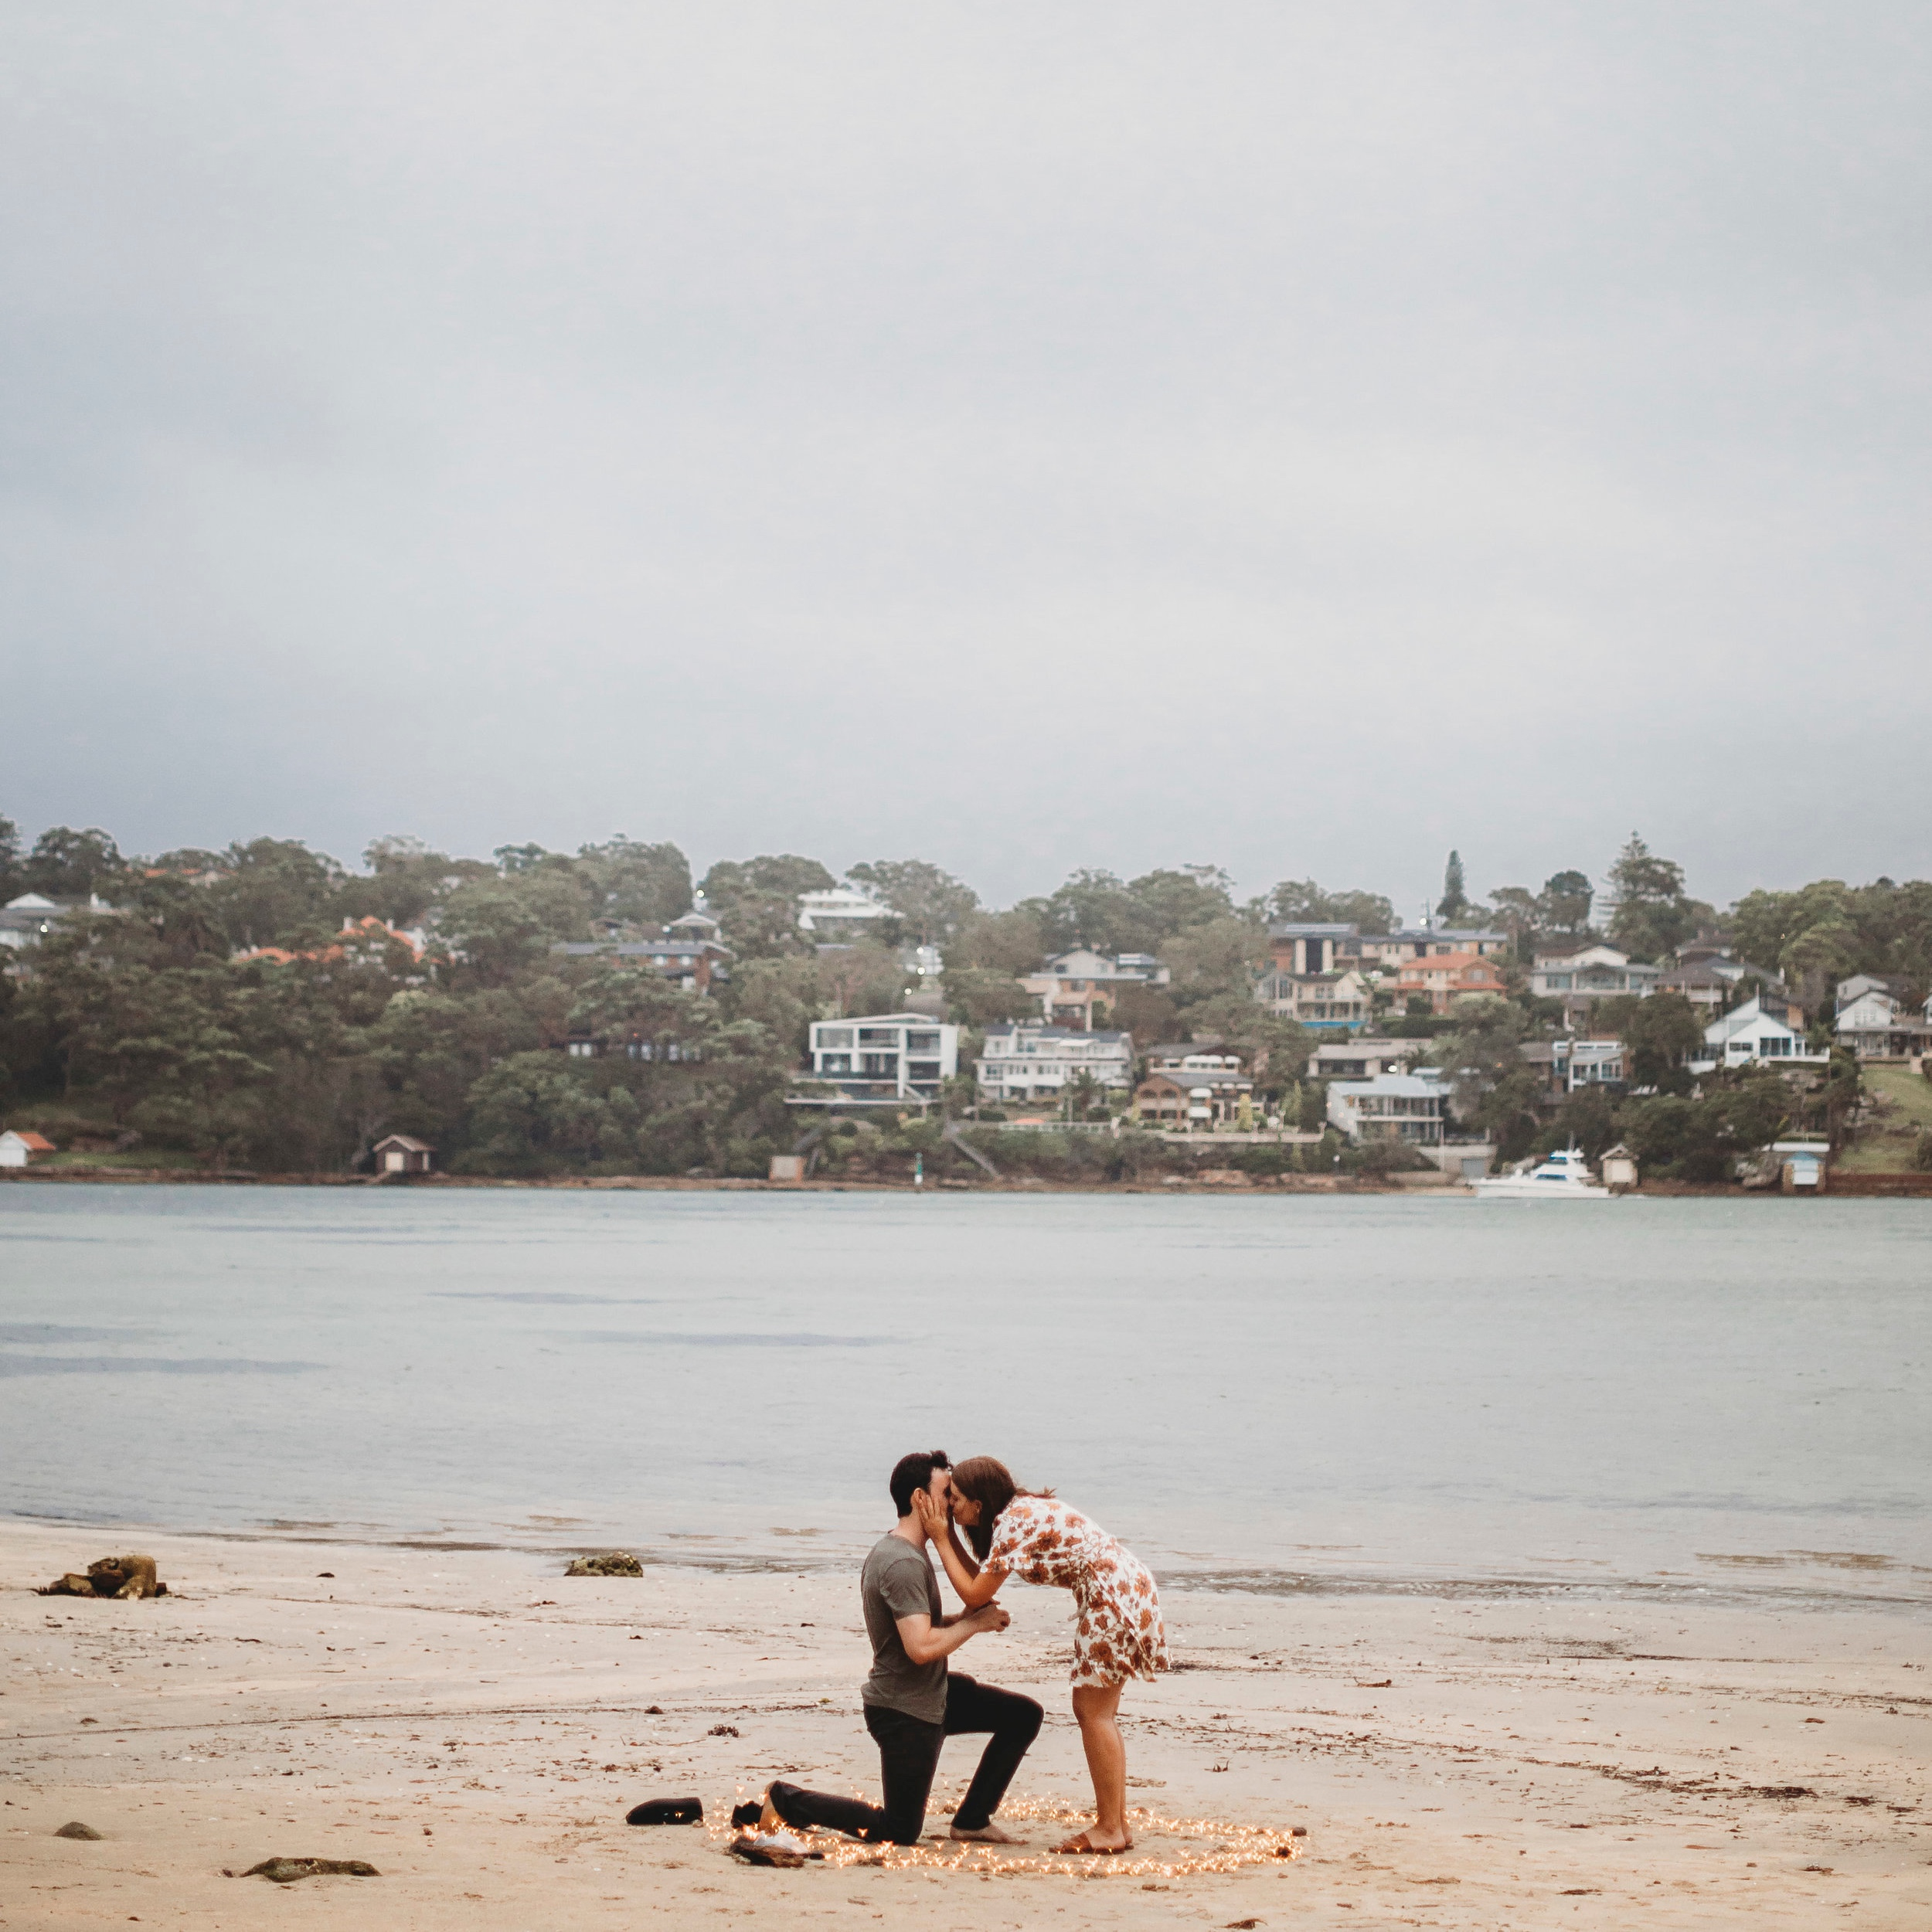 the beresfords - A surprise engagement on rainy afternoon